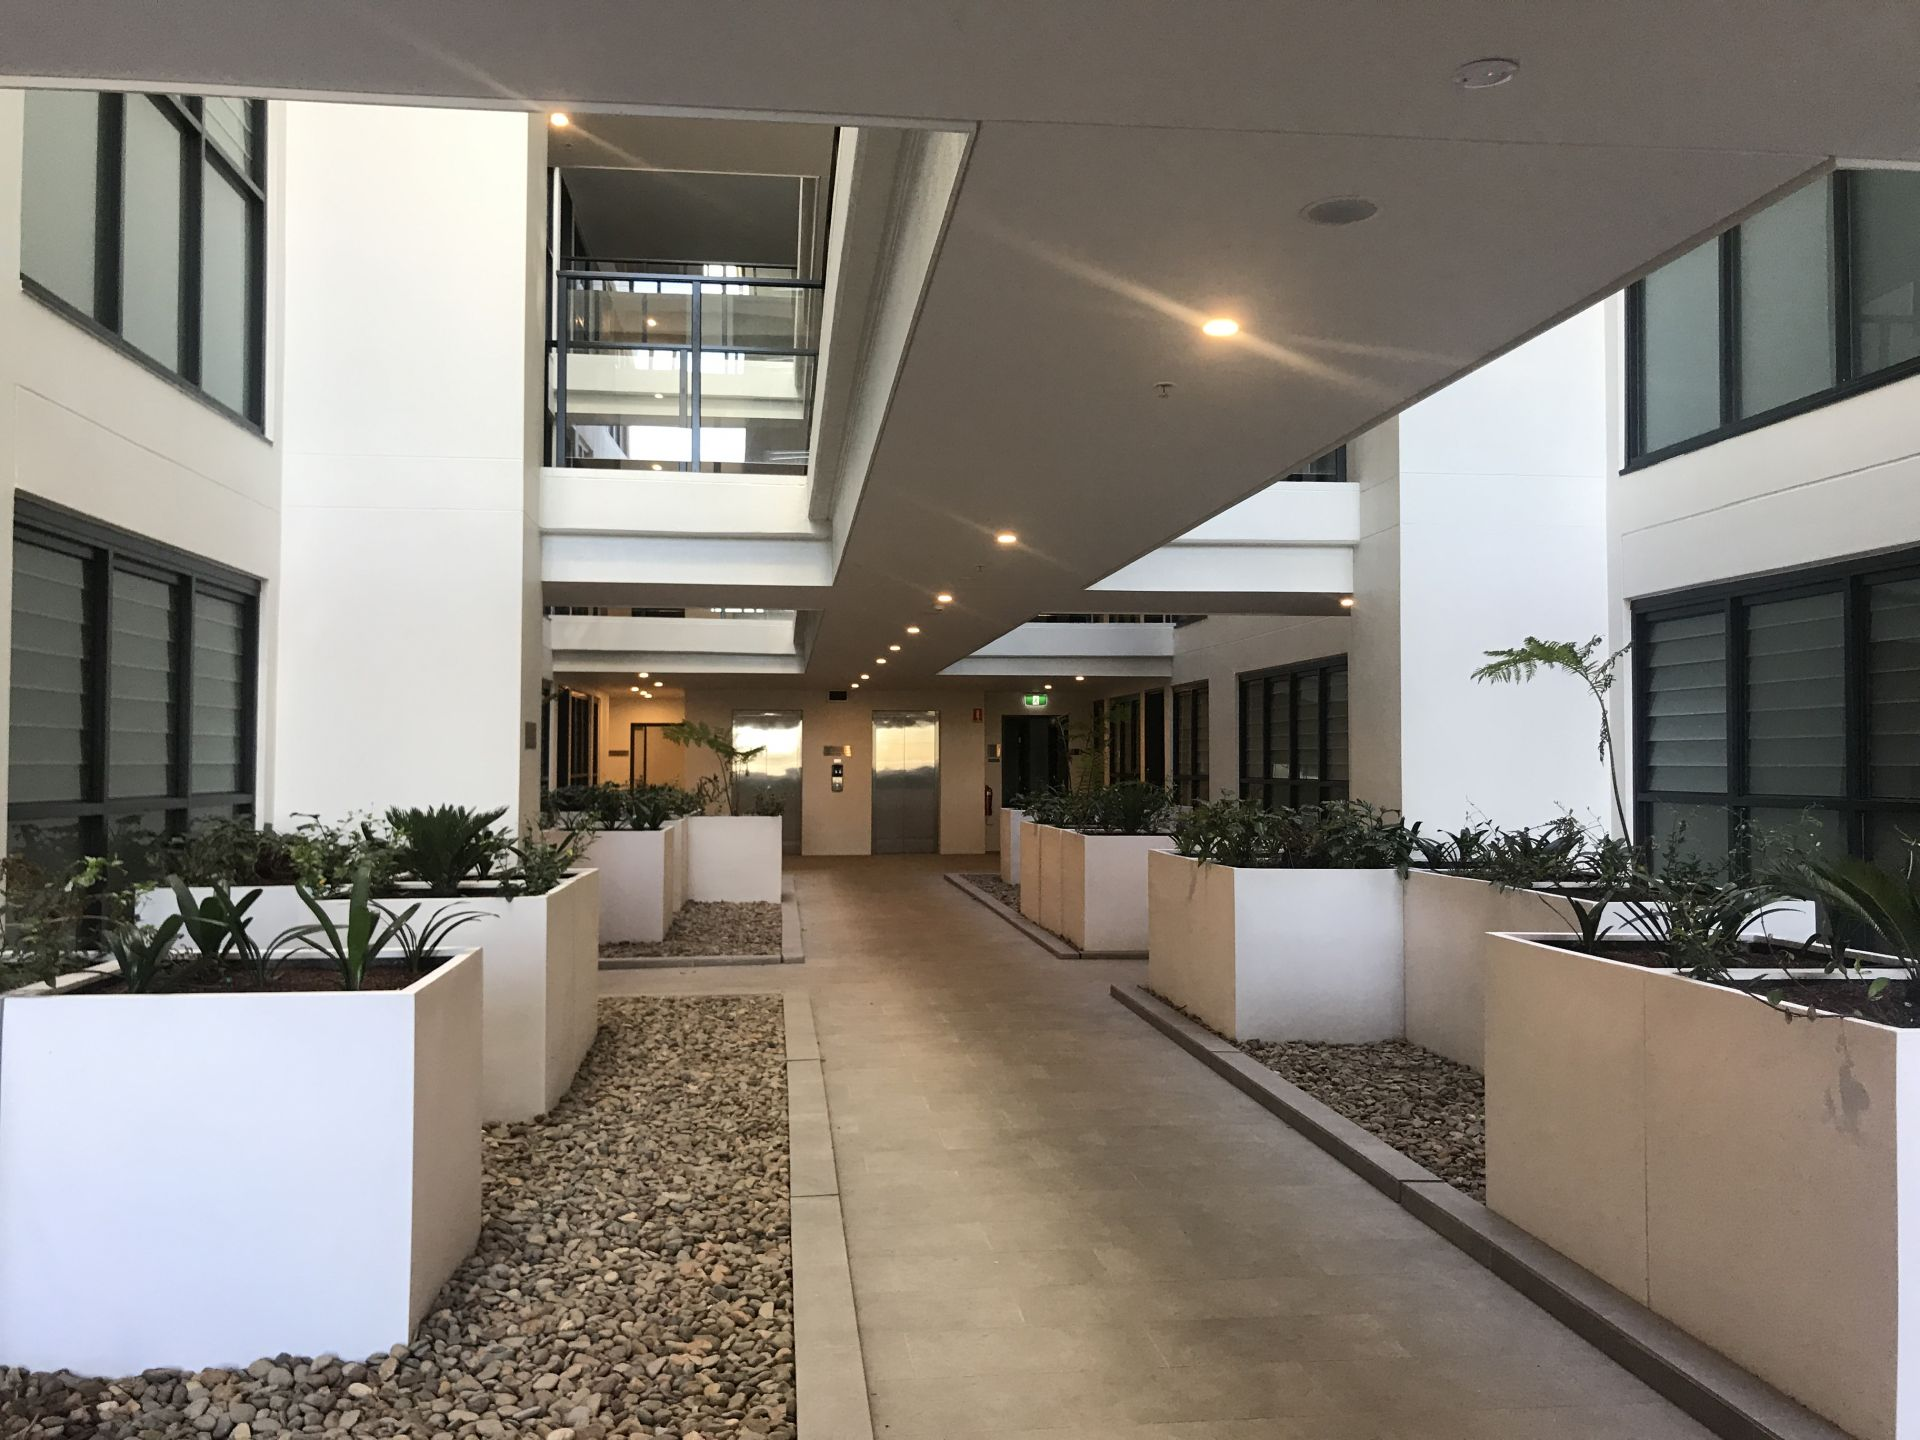 402 581 587 gardeners road mascot nsw 2020 apartment for sale